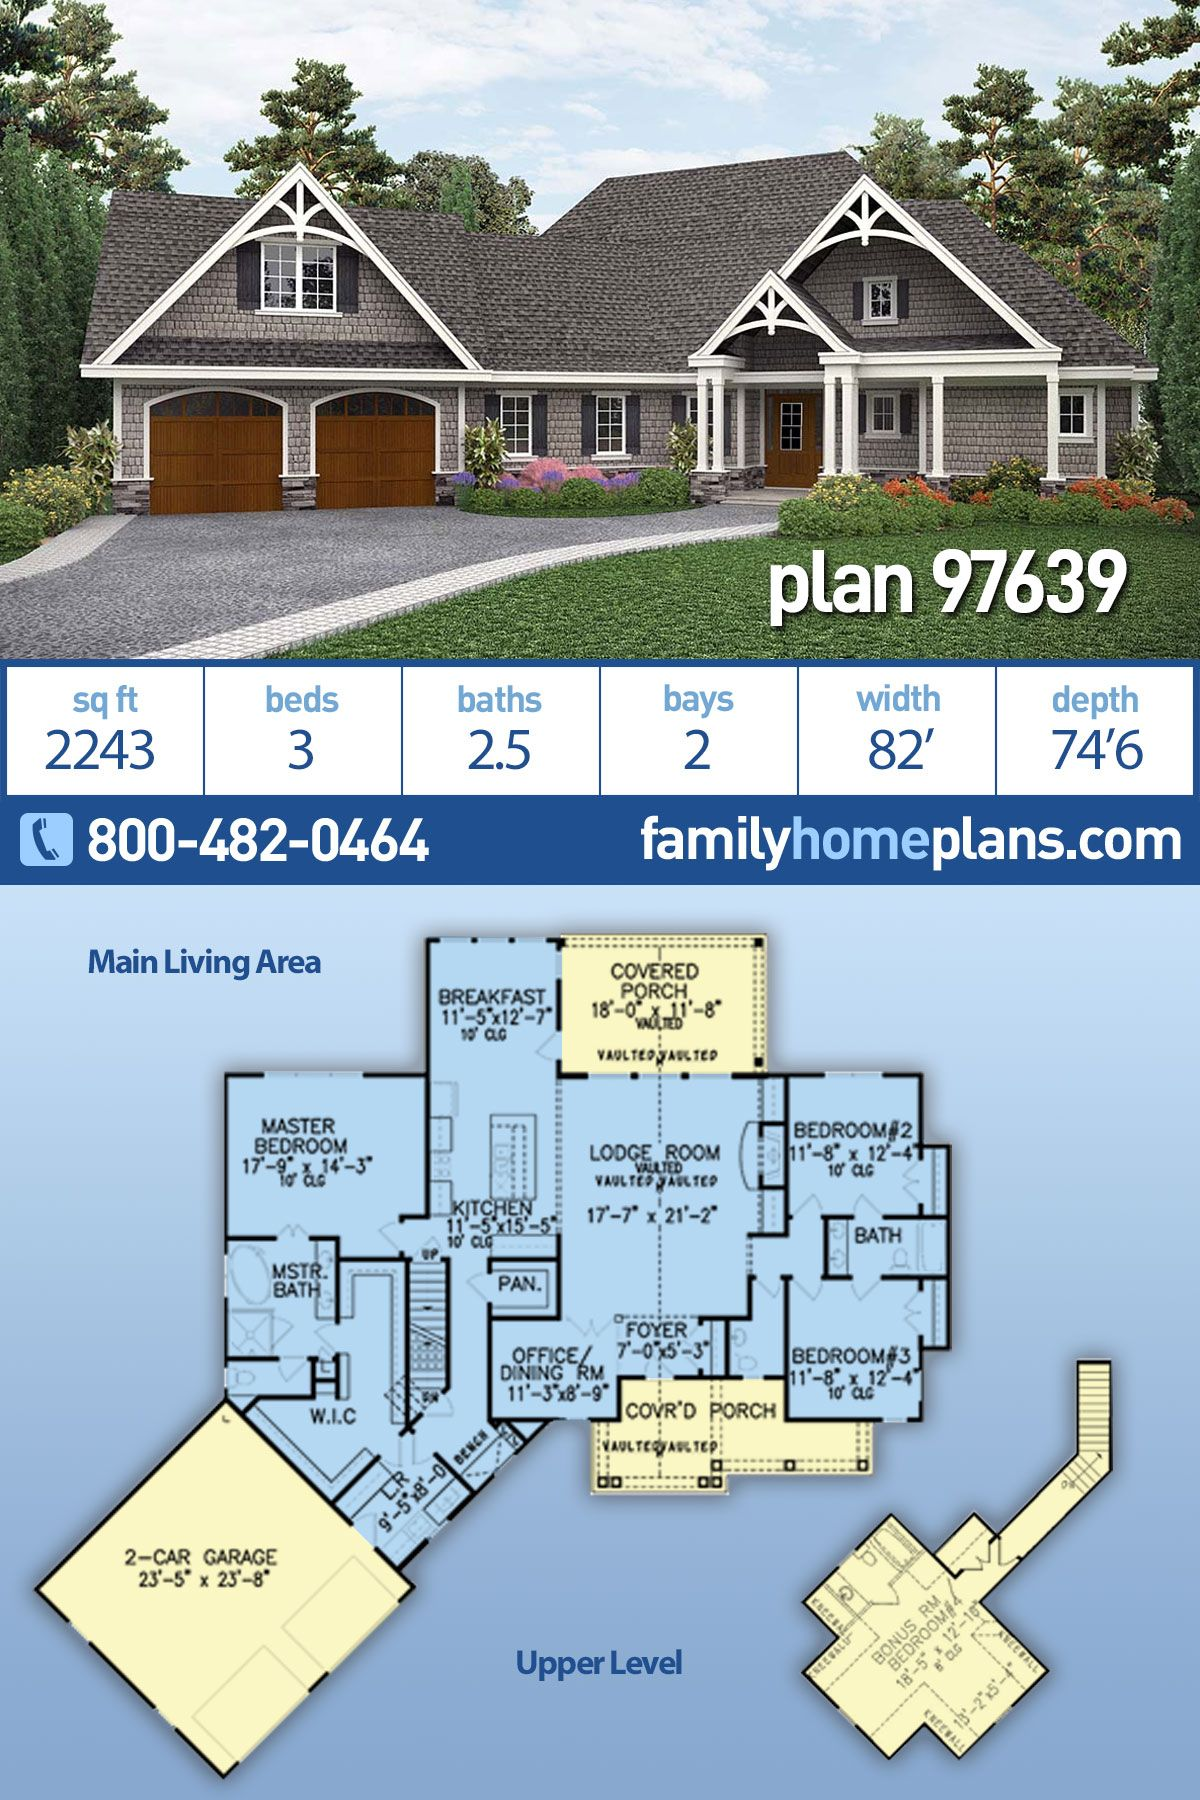 Craftsman Style Ranch Homes : craftsman, style, ranch, homes, Ranch, Style, House, 97639, Bath,, Garage, Plans,, Craftsman, Plans